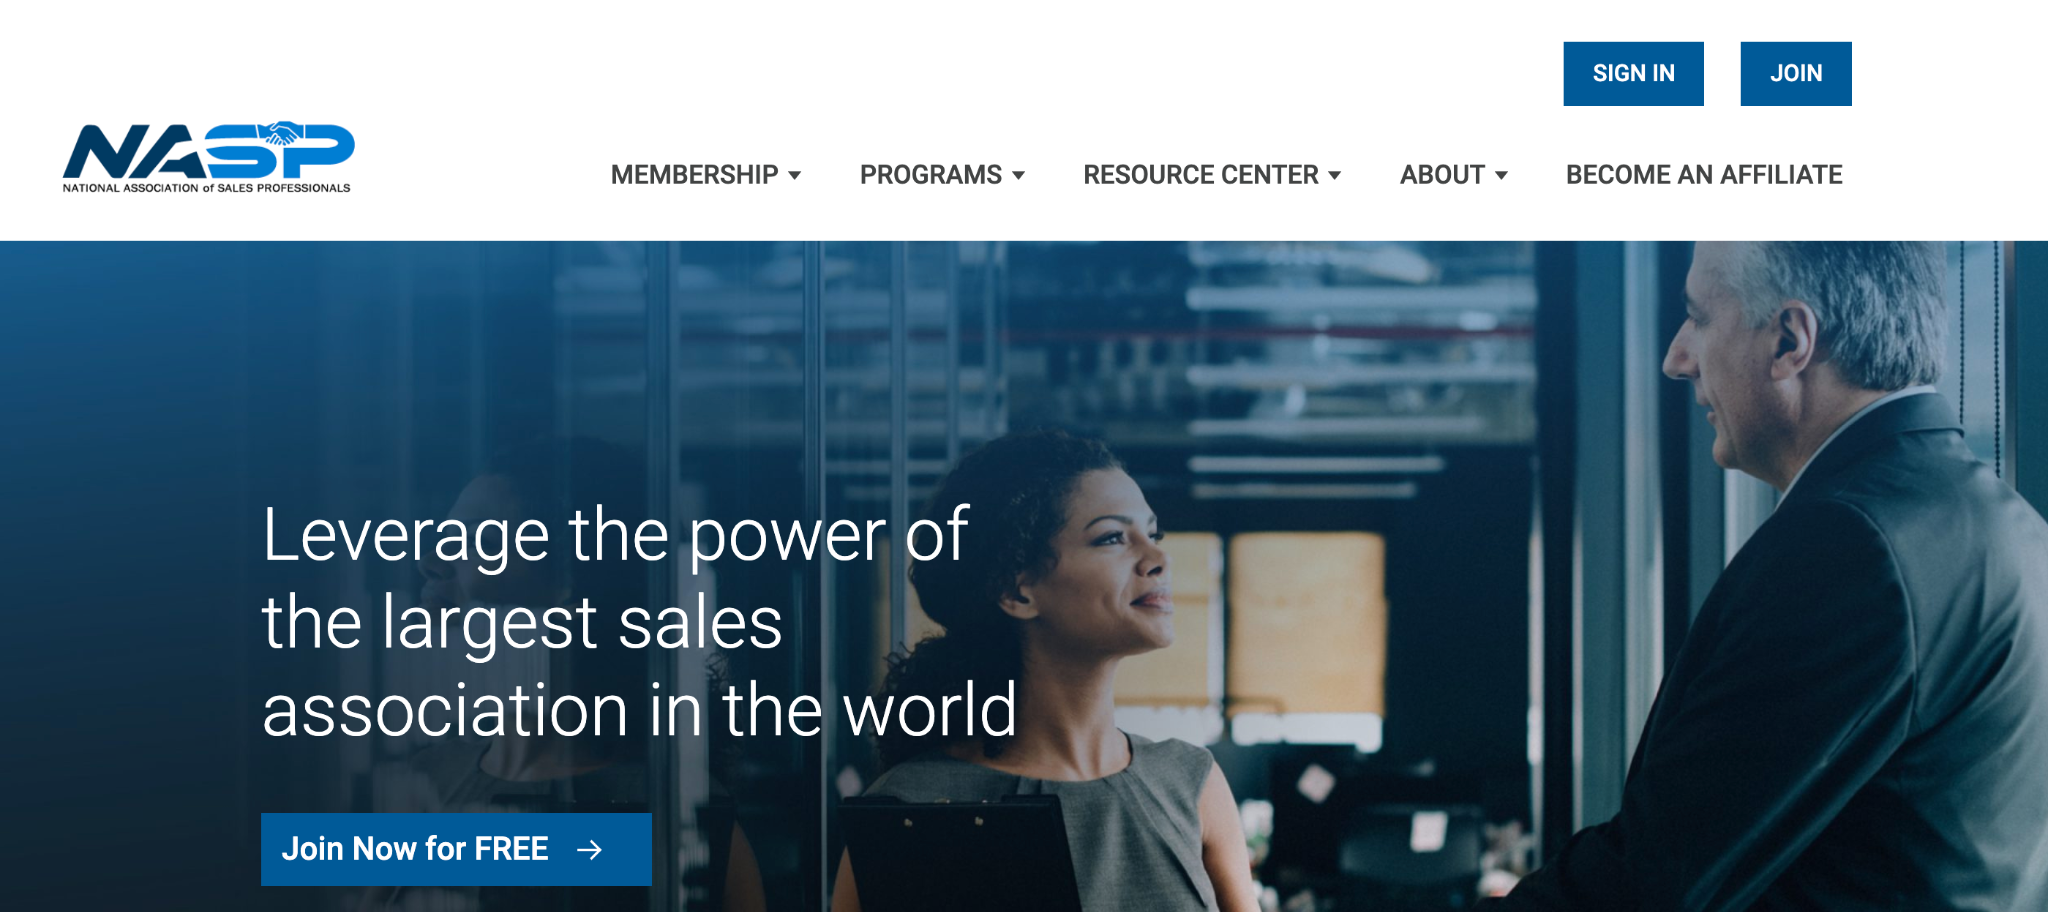 A screenshot of National Association of Sales Professionals' landing page.